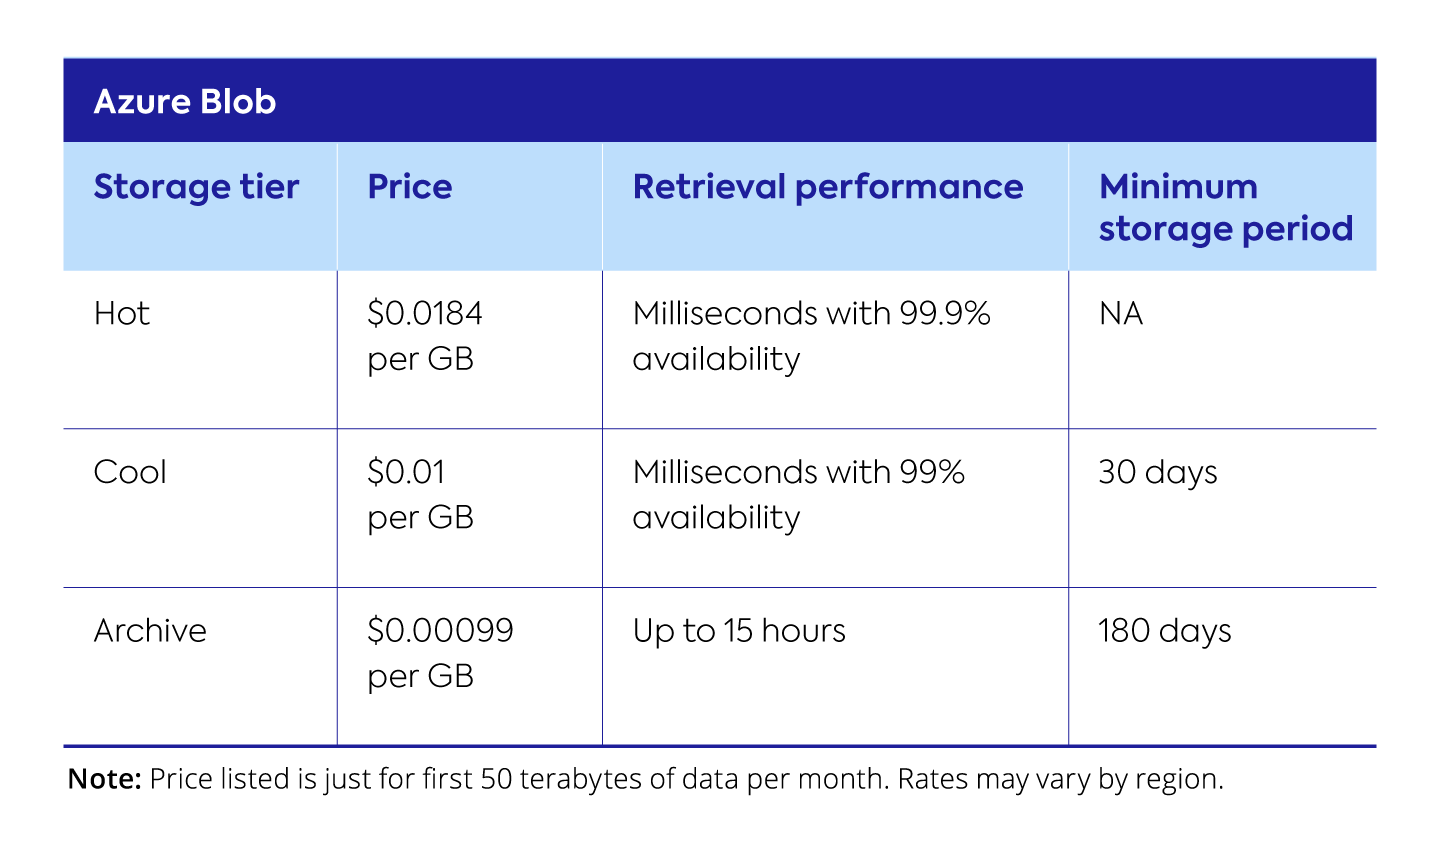 Cost savings for Azure Blob with tiered storage